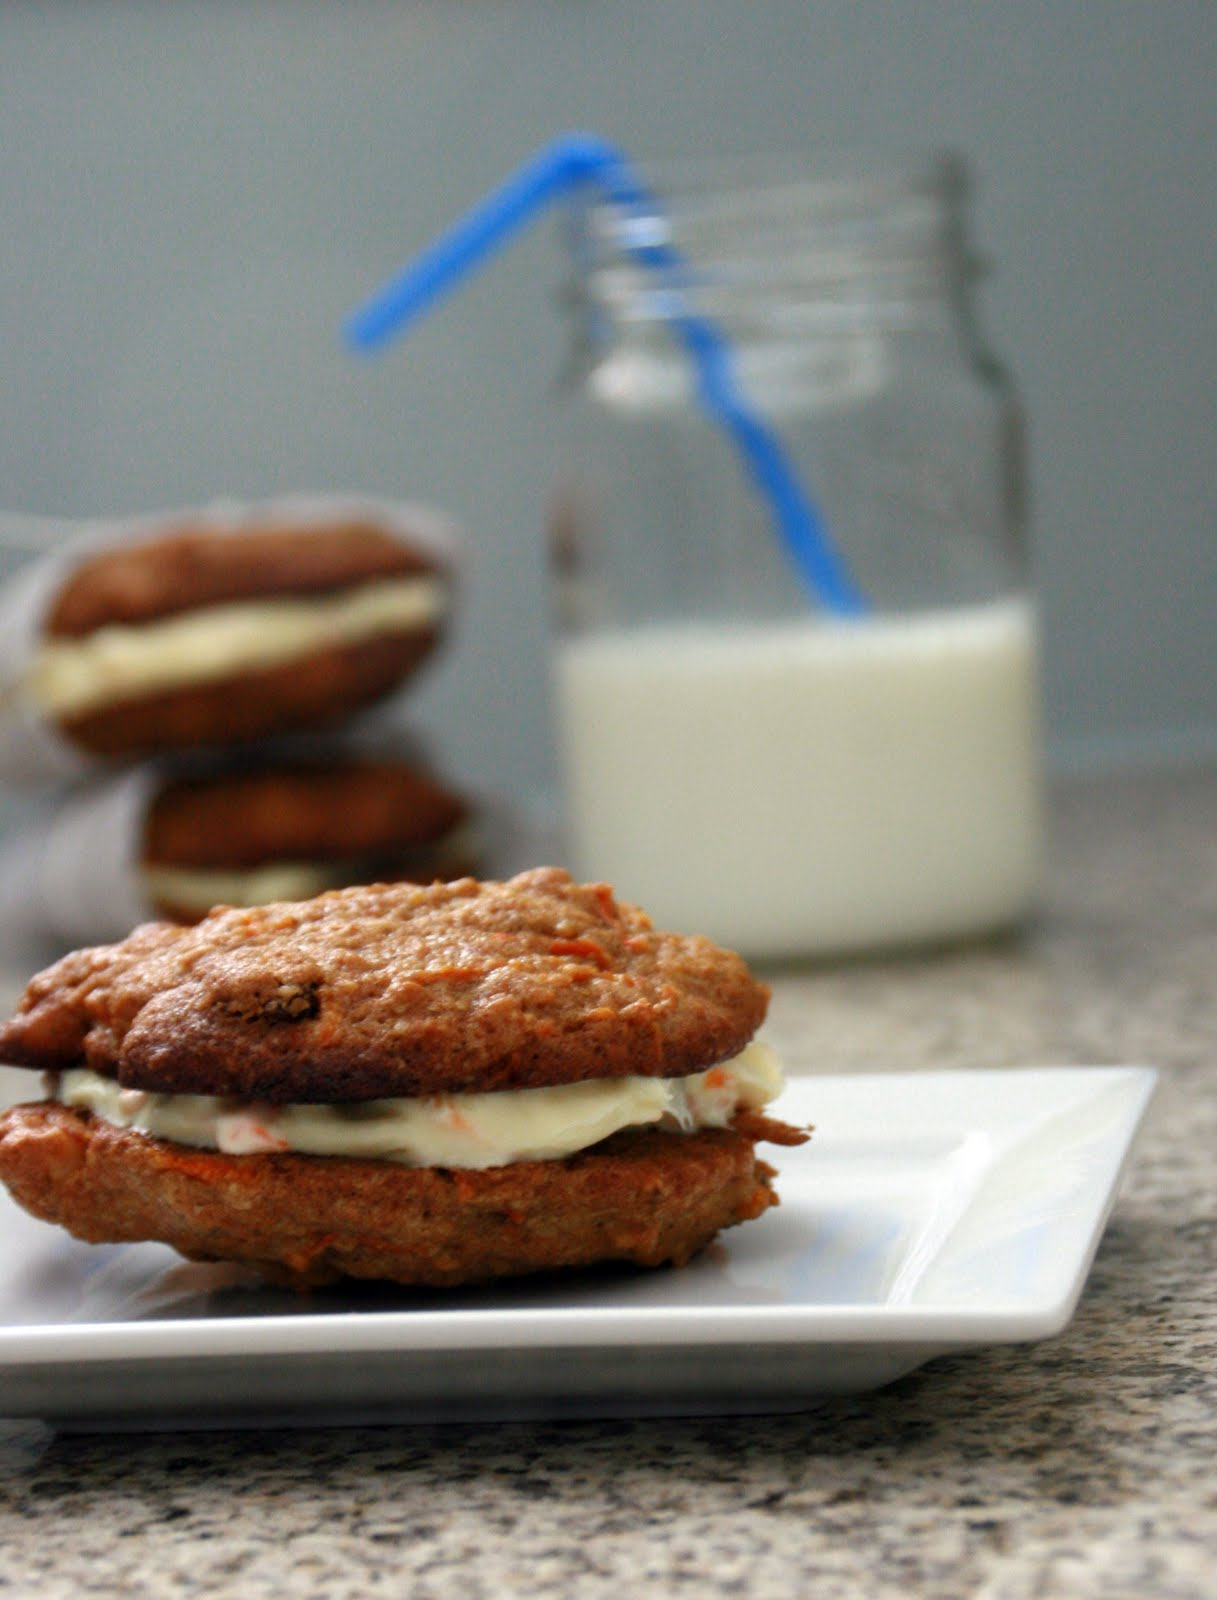 ... with Chopin, Living with Elmo: Inside-Out Carrot Cake Cookies (SRC